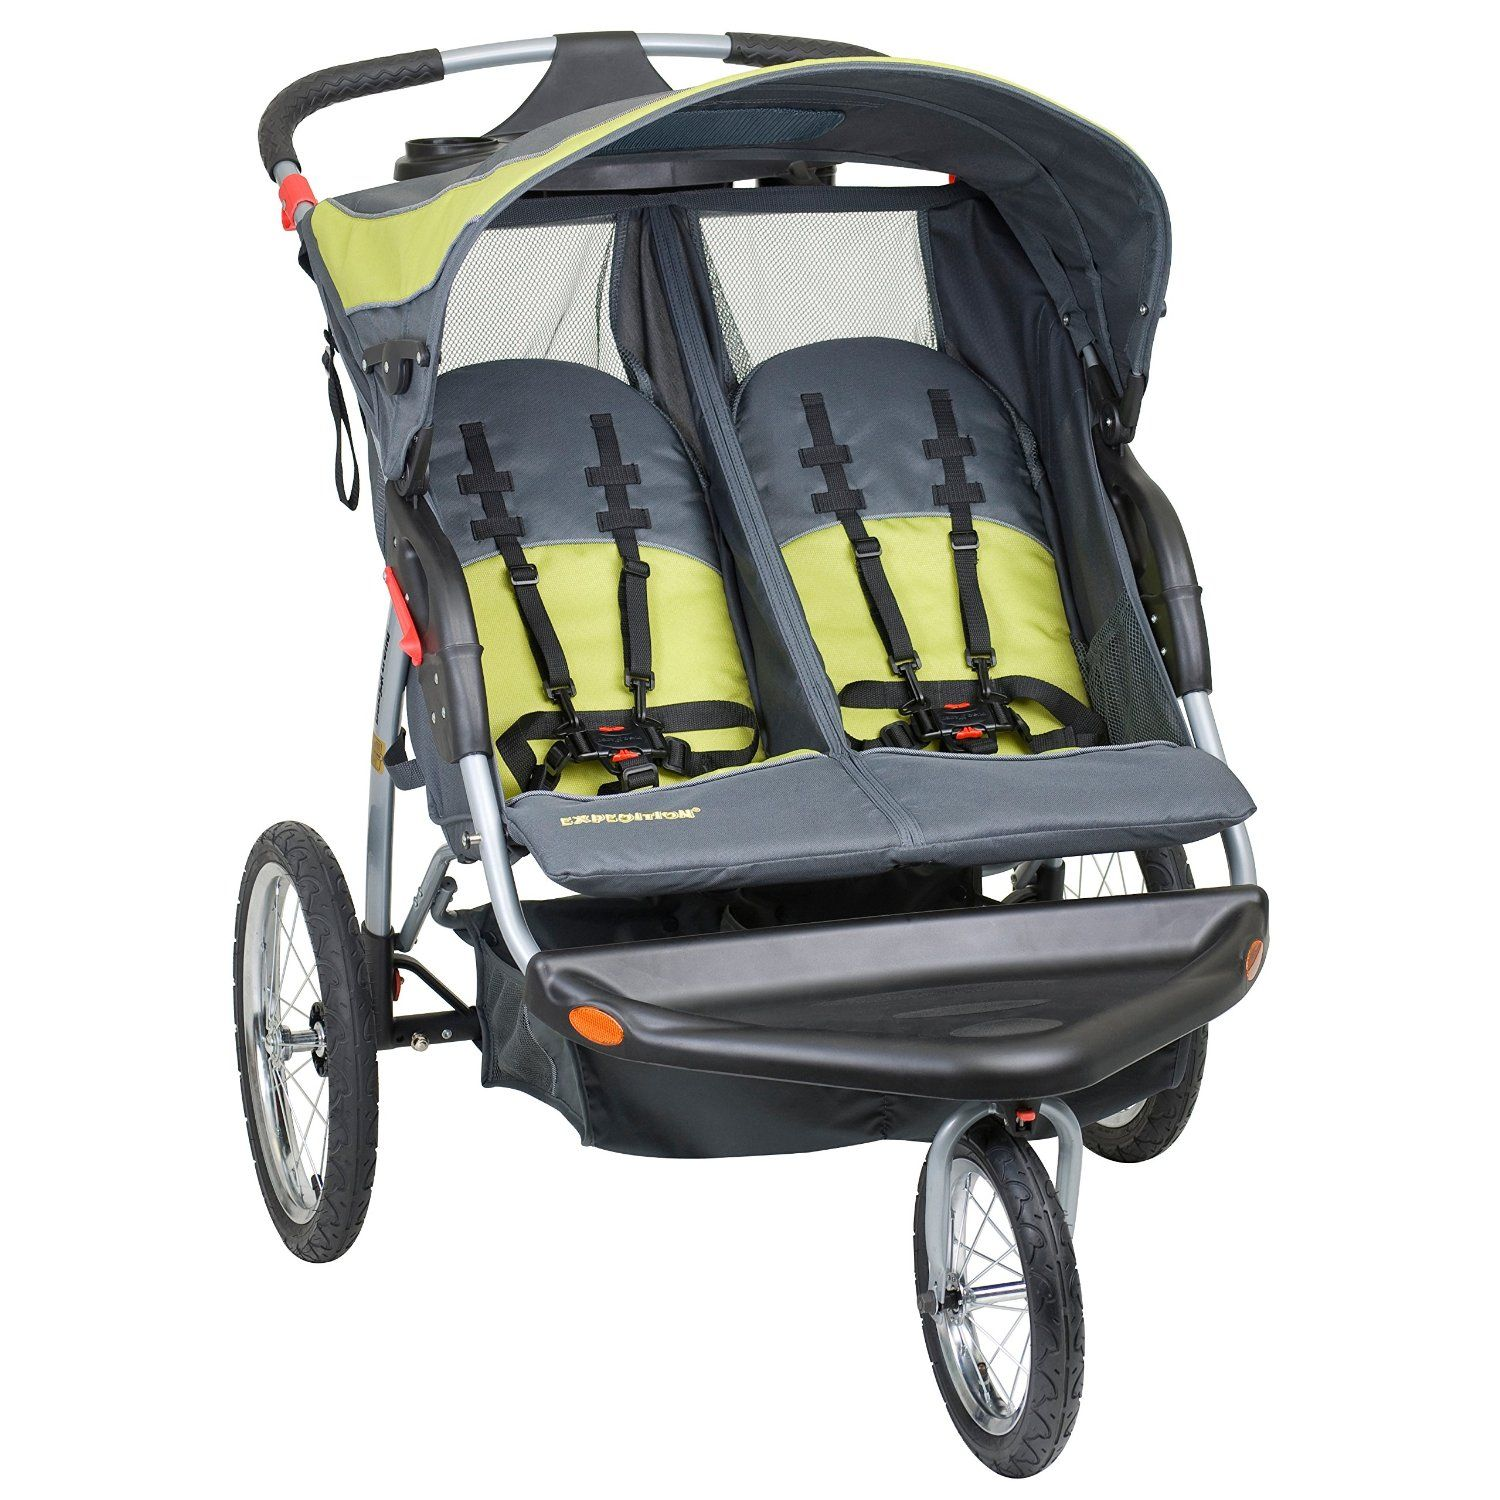 Top 10 Best Dual And Jogging Strollers in 2019 Reviews